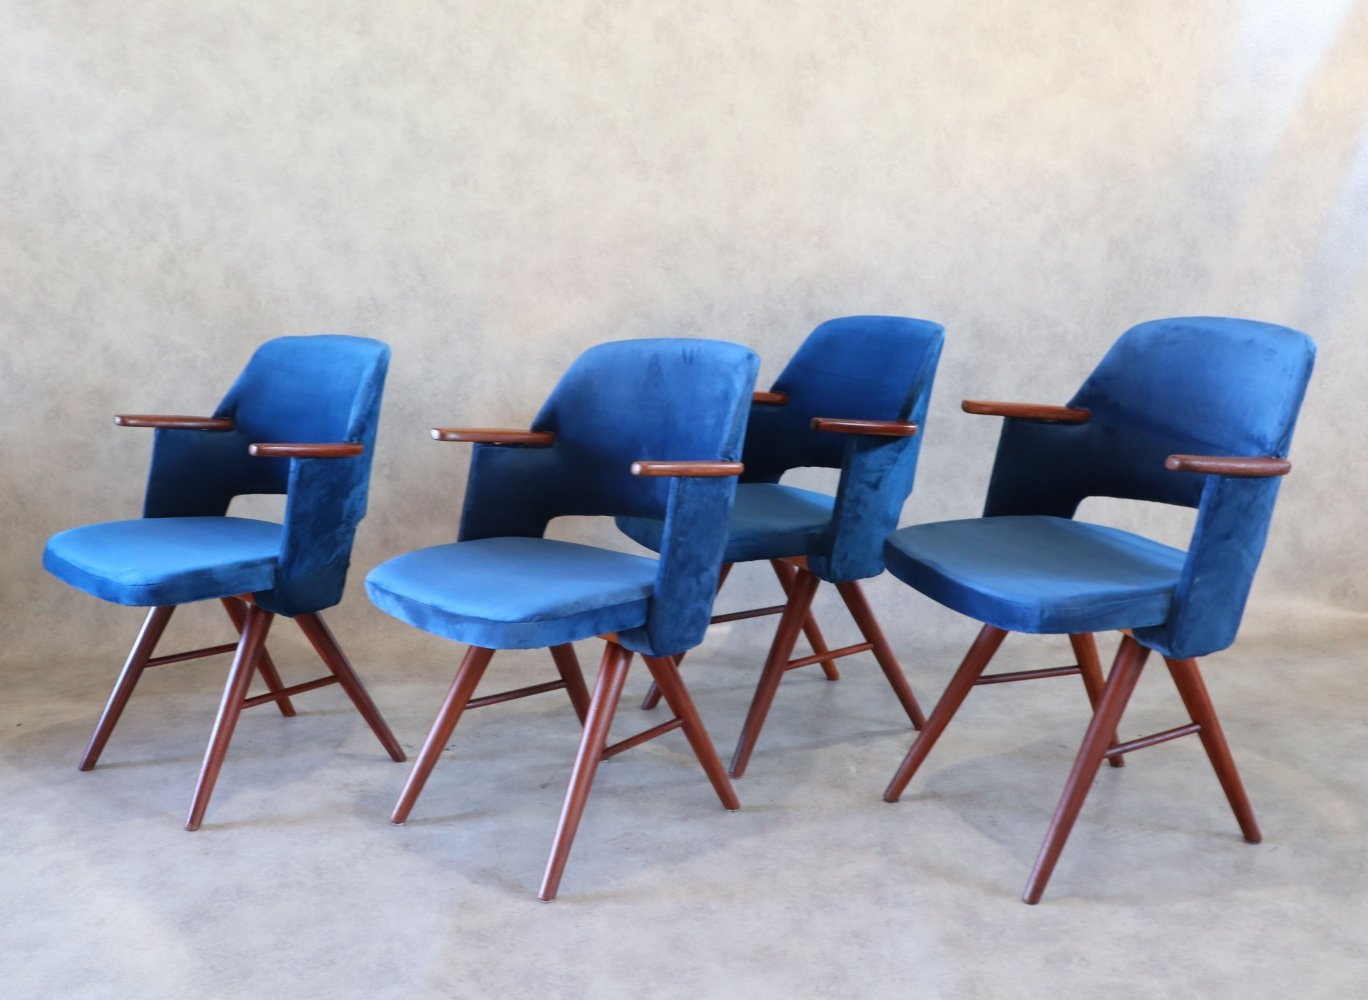 Teak Mid Century Modern FT30 Dining Chairs by Cees Braakman for Pastoe, 1960s